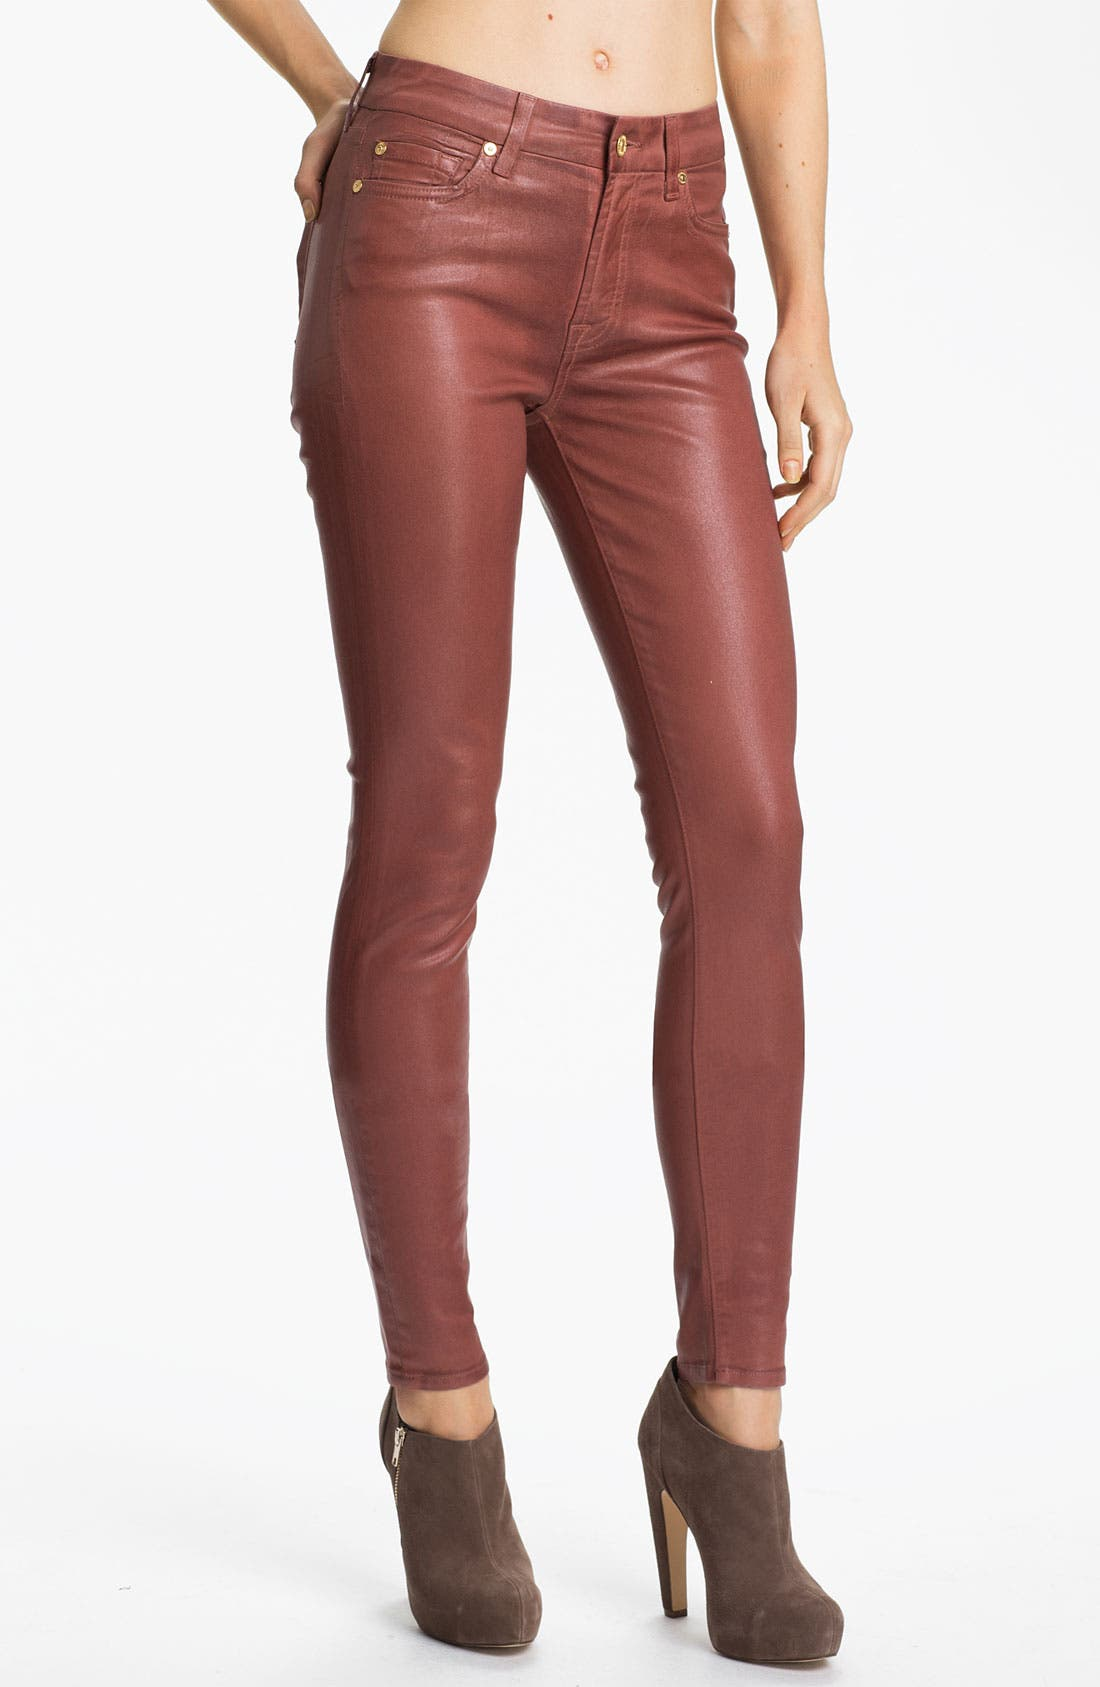 Alternate Image 1 Selected - 7 For All Mankind® Coated Skinny Stretch Jeans (Dusty Pink High Shine)